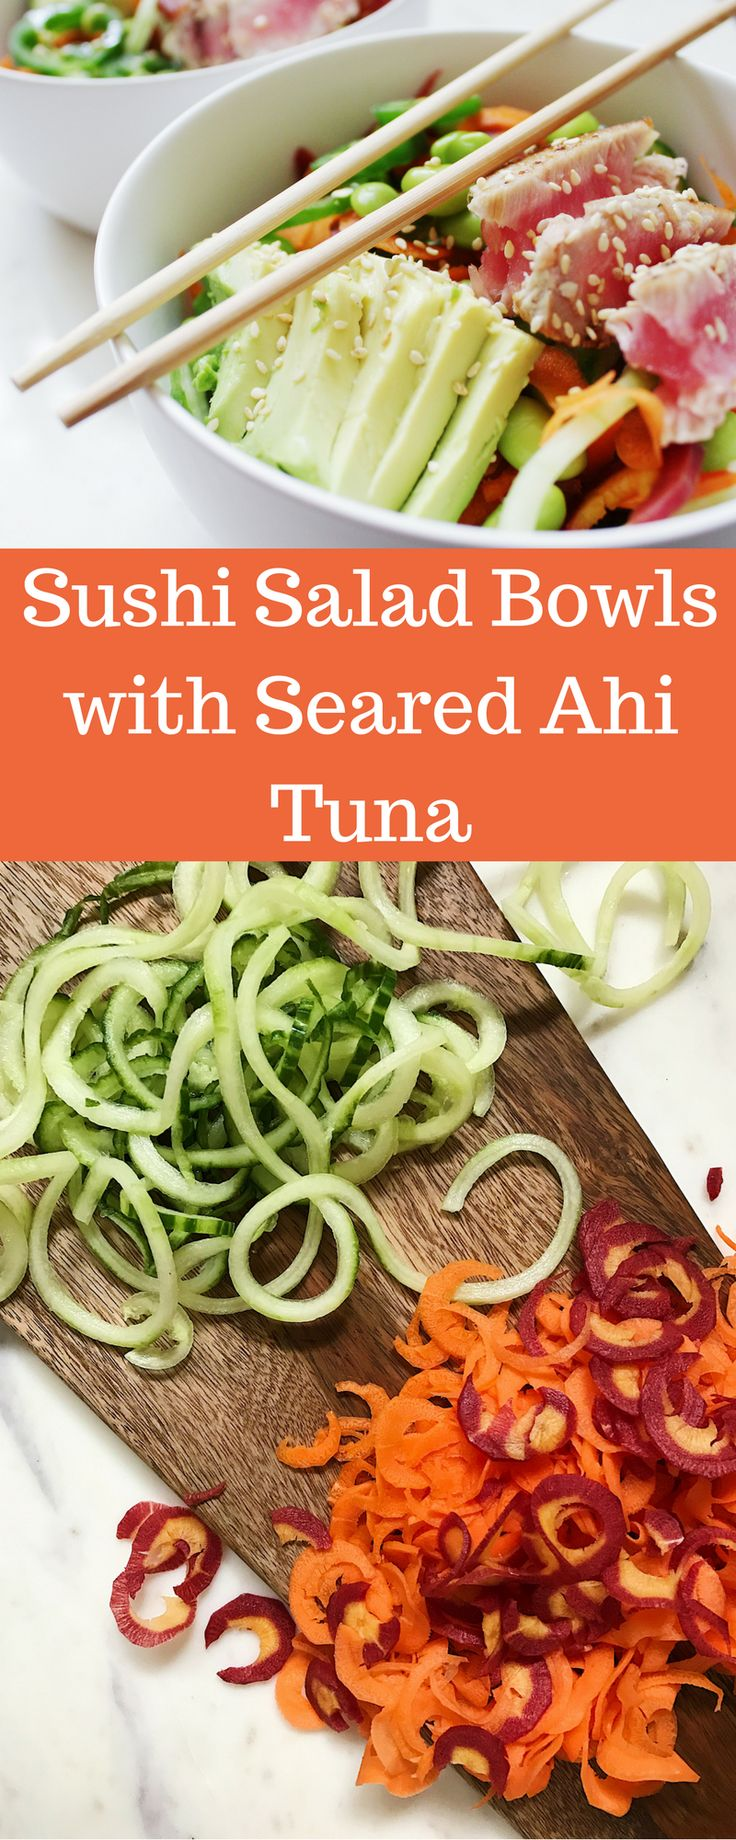 Sushi Salad Bowls with Seared Ahi Tuna and spiralized veggies. Low carb, paleo, gluten-free, dairy-free, grain-free!